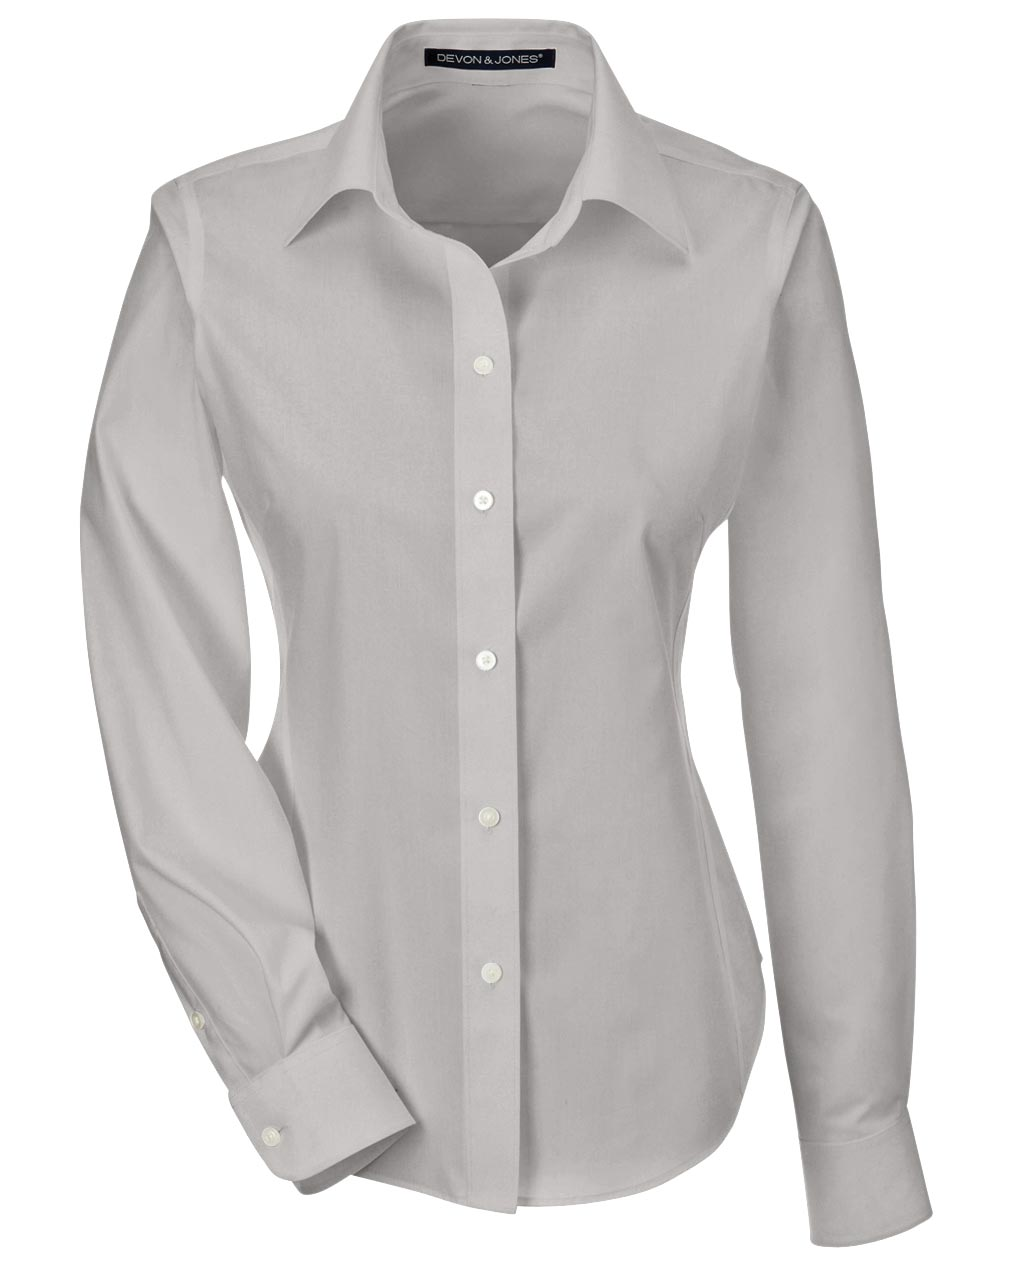 Ladies Performance Solid Broadcloth Dress Shirt